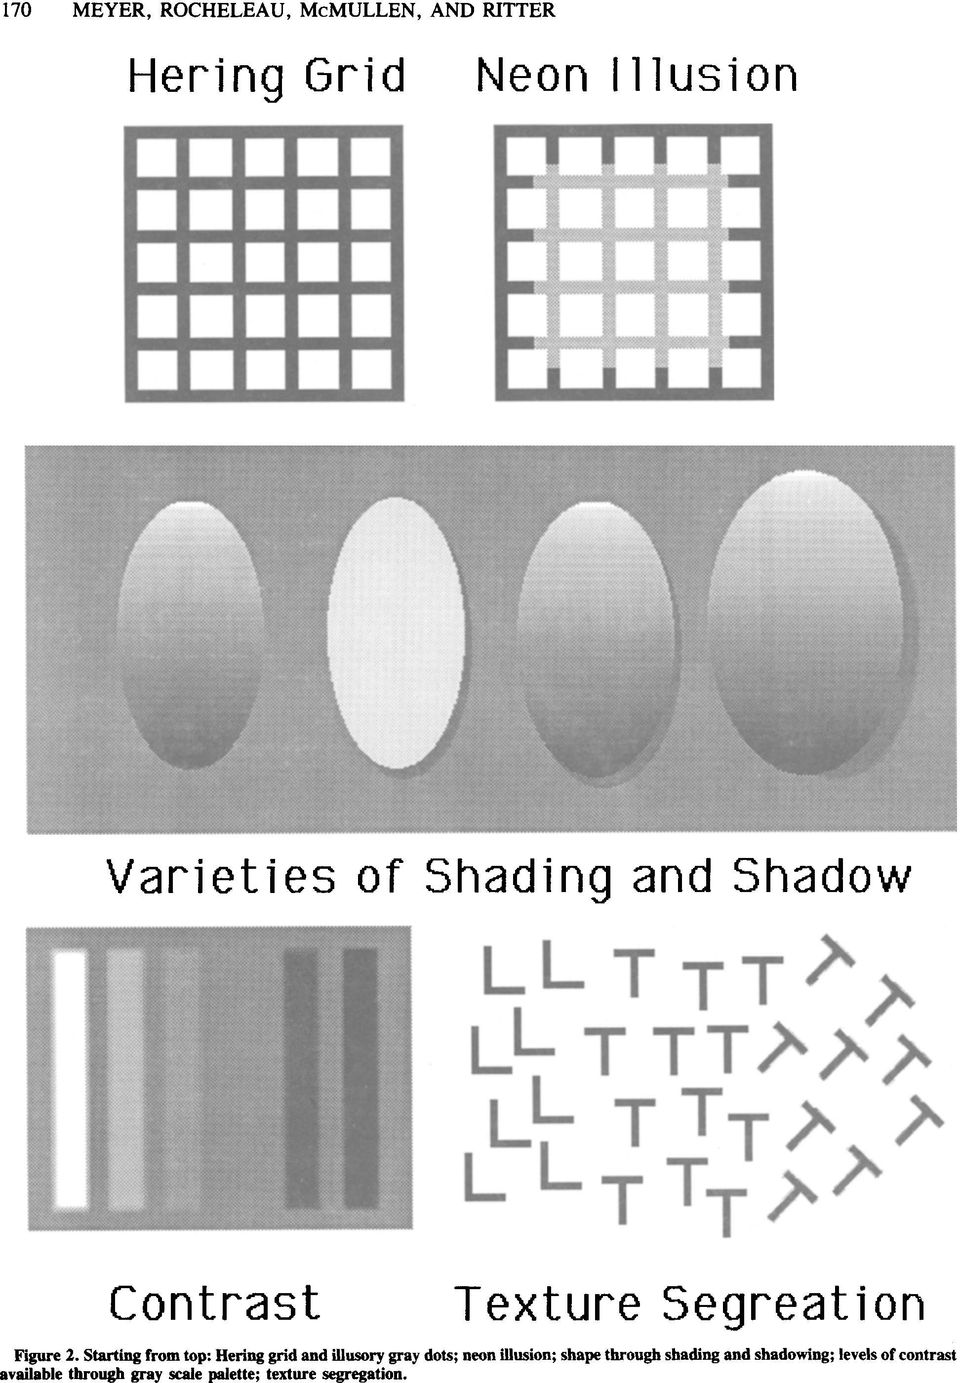 Starting from top: Hering grid and illusory gray dots; neon illusion; shape through